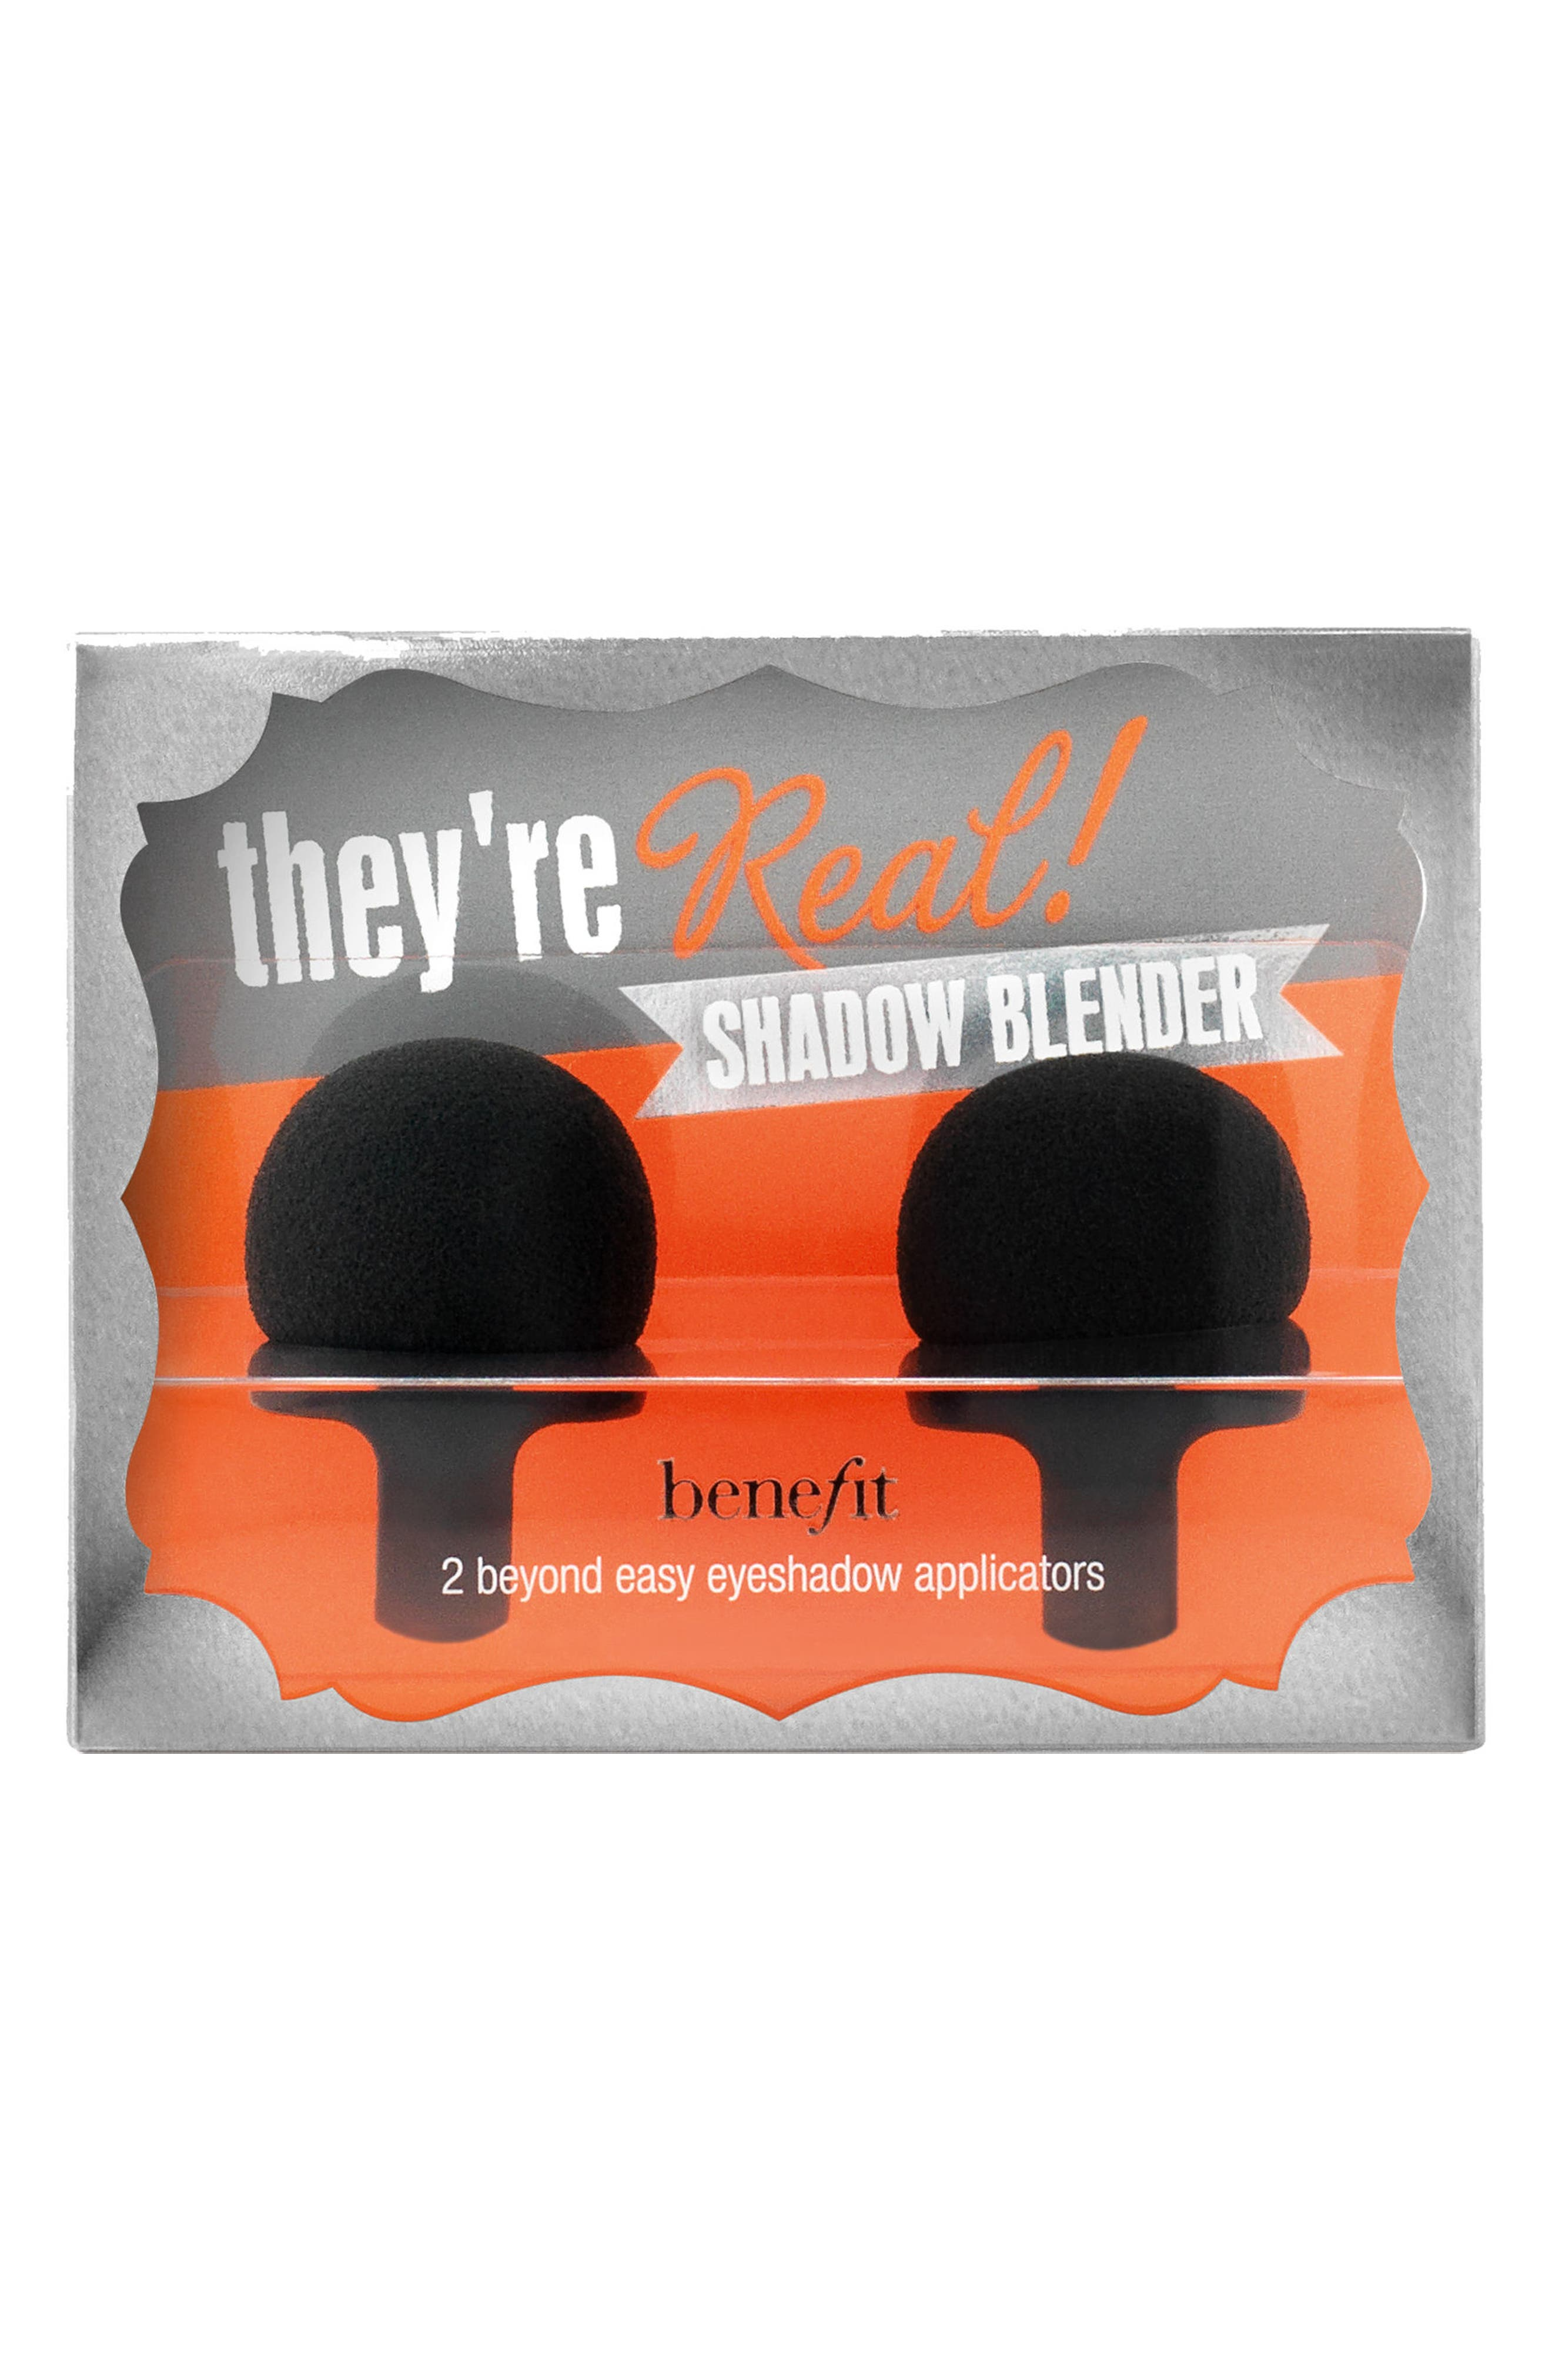 Benefit They're Real! ShadowBlender Duo Beyond Easy Eyeshadow Applicators,                             Main thumbnail 1, color,                             NO COLOR